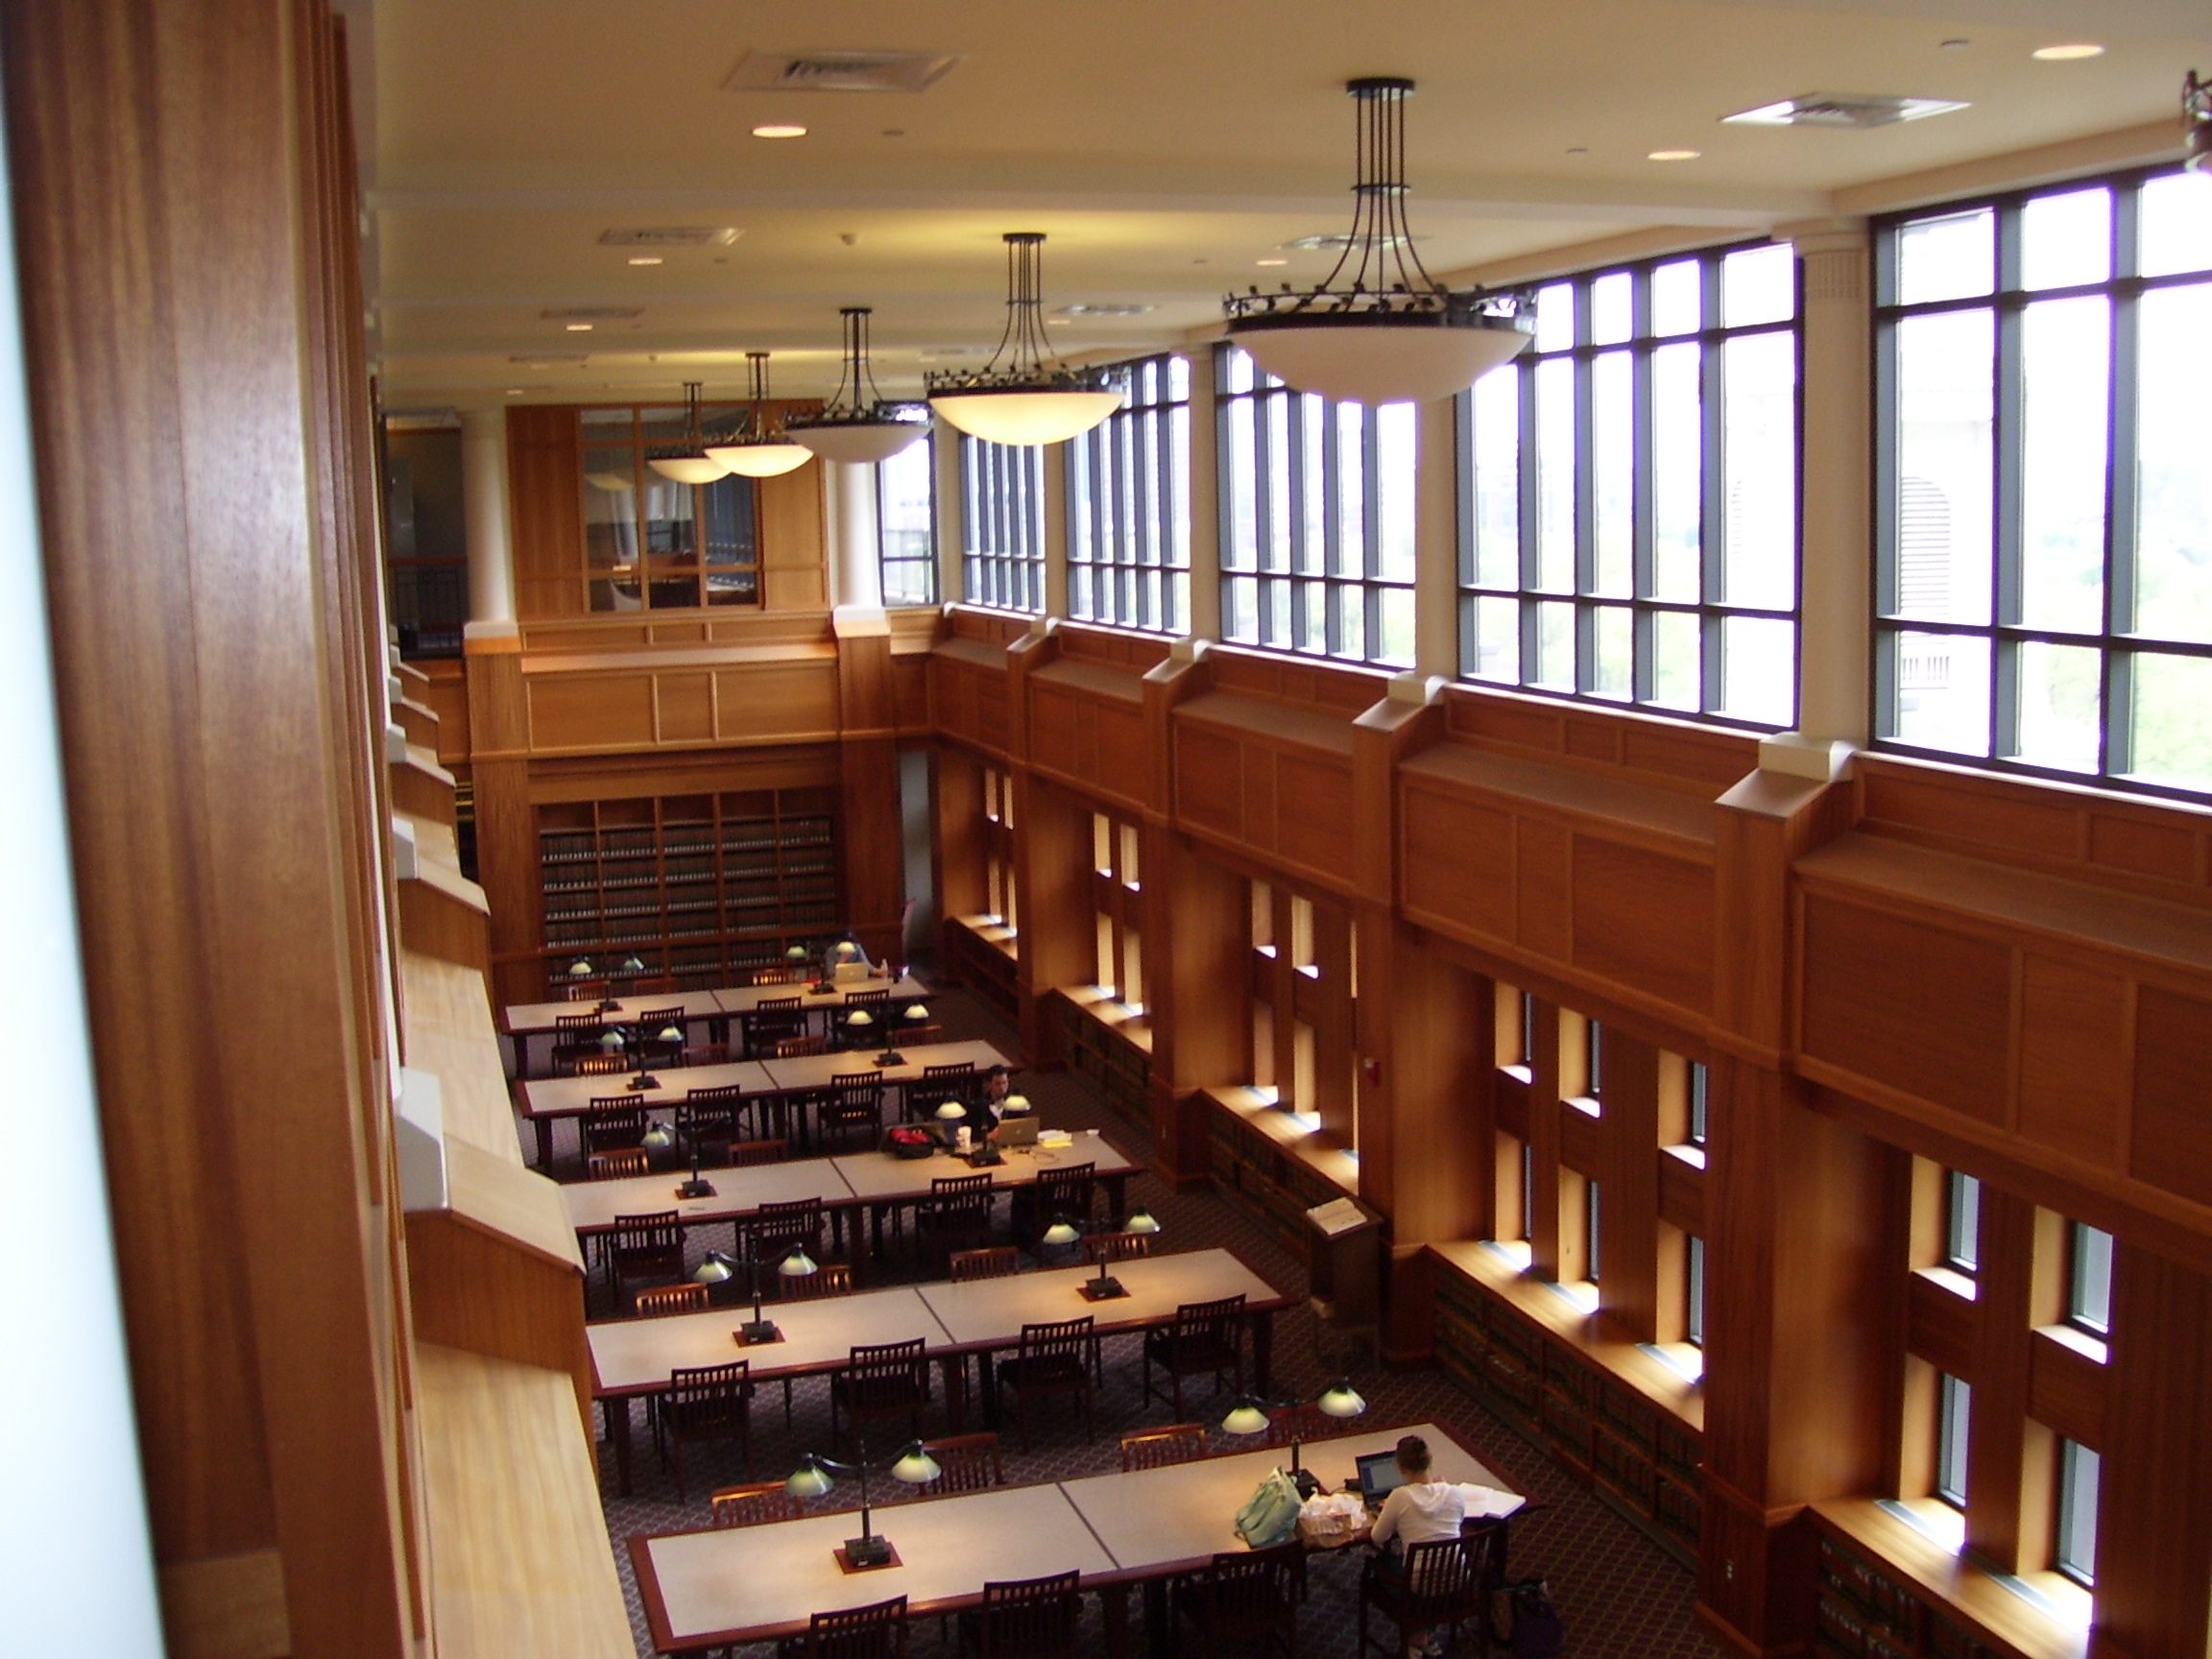 Suffolk Law School Library Study Room Reservation